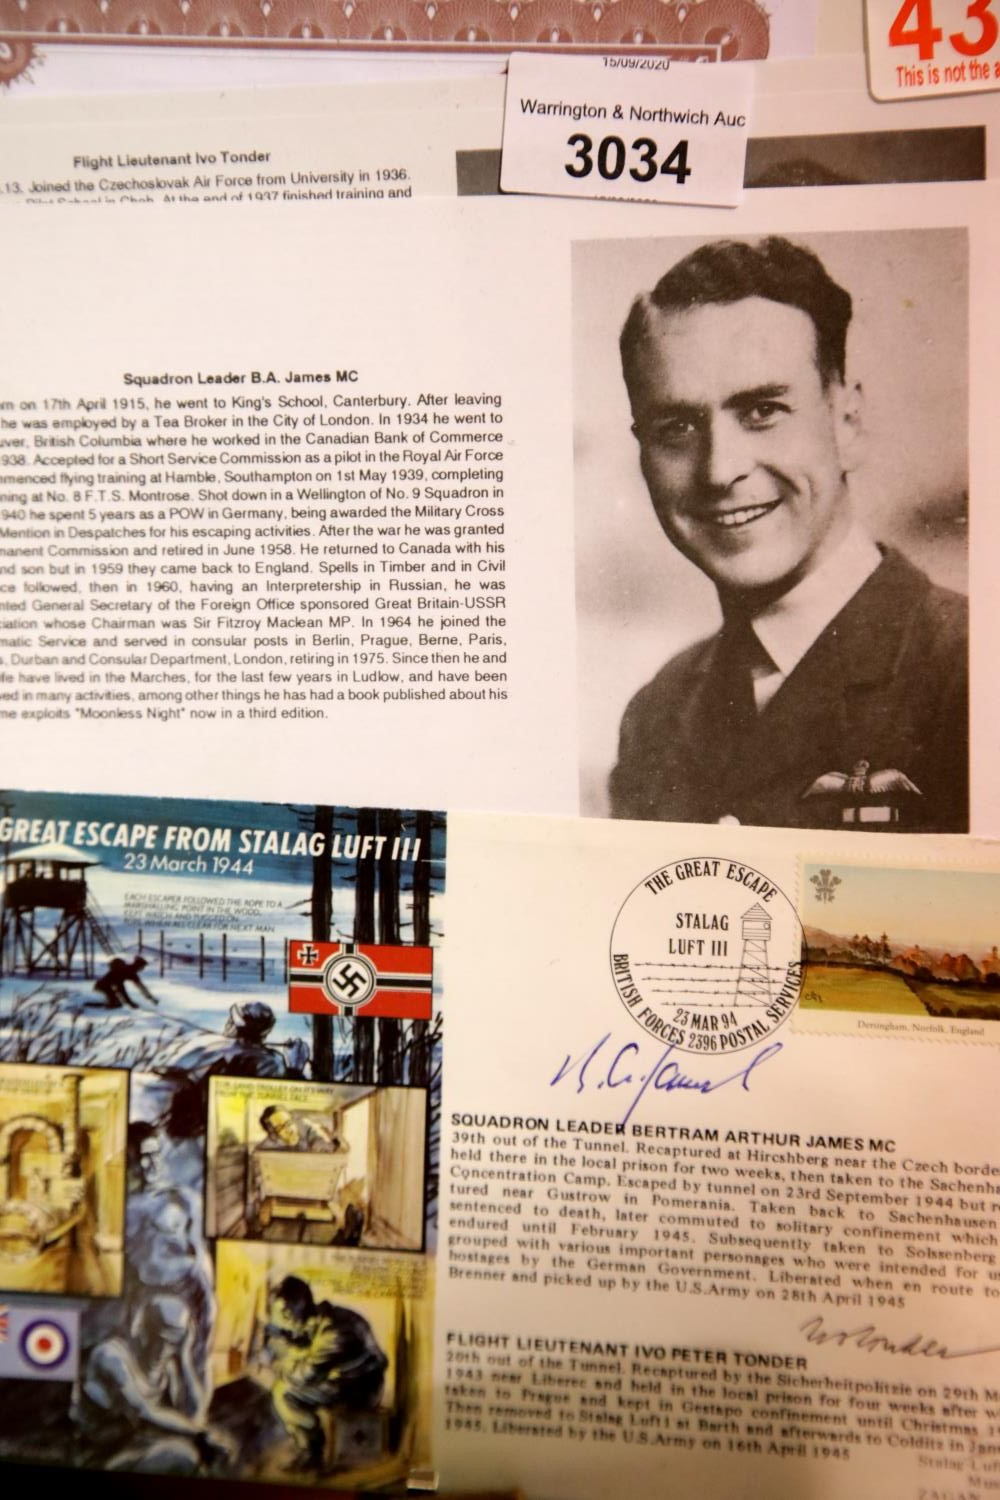 Lot 3034 - Stalag Luft III escapees' signatures of Squadron Leader Bertram Arthur James MC and Flight